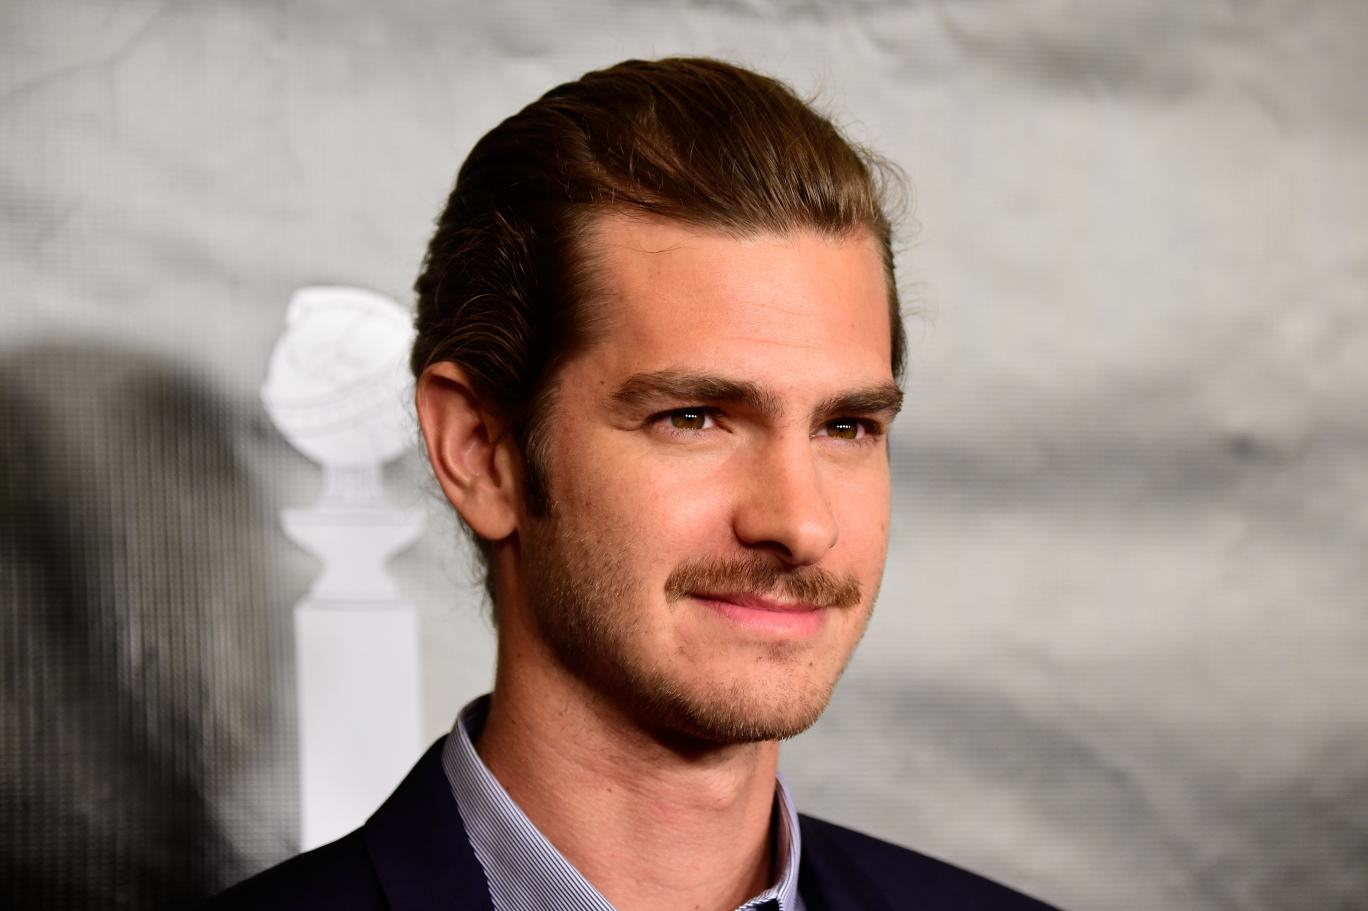 UNILAD GettyImages 4839086125 Spider Man Actor Andrew Garfield Has Interview Meltdown, Is Refreshingly Honest